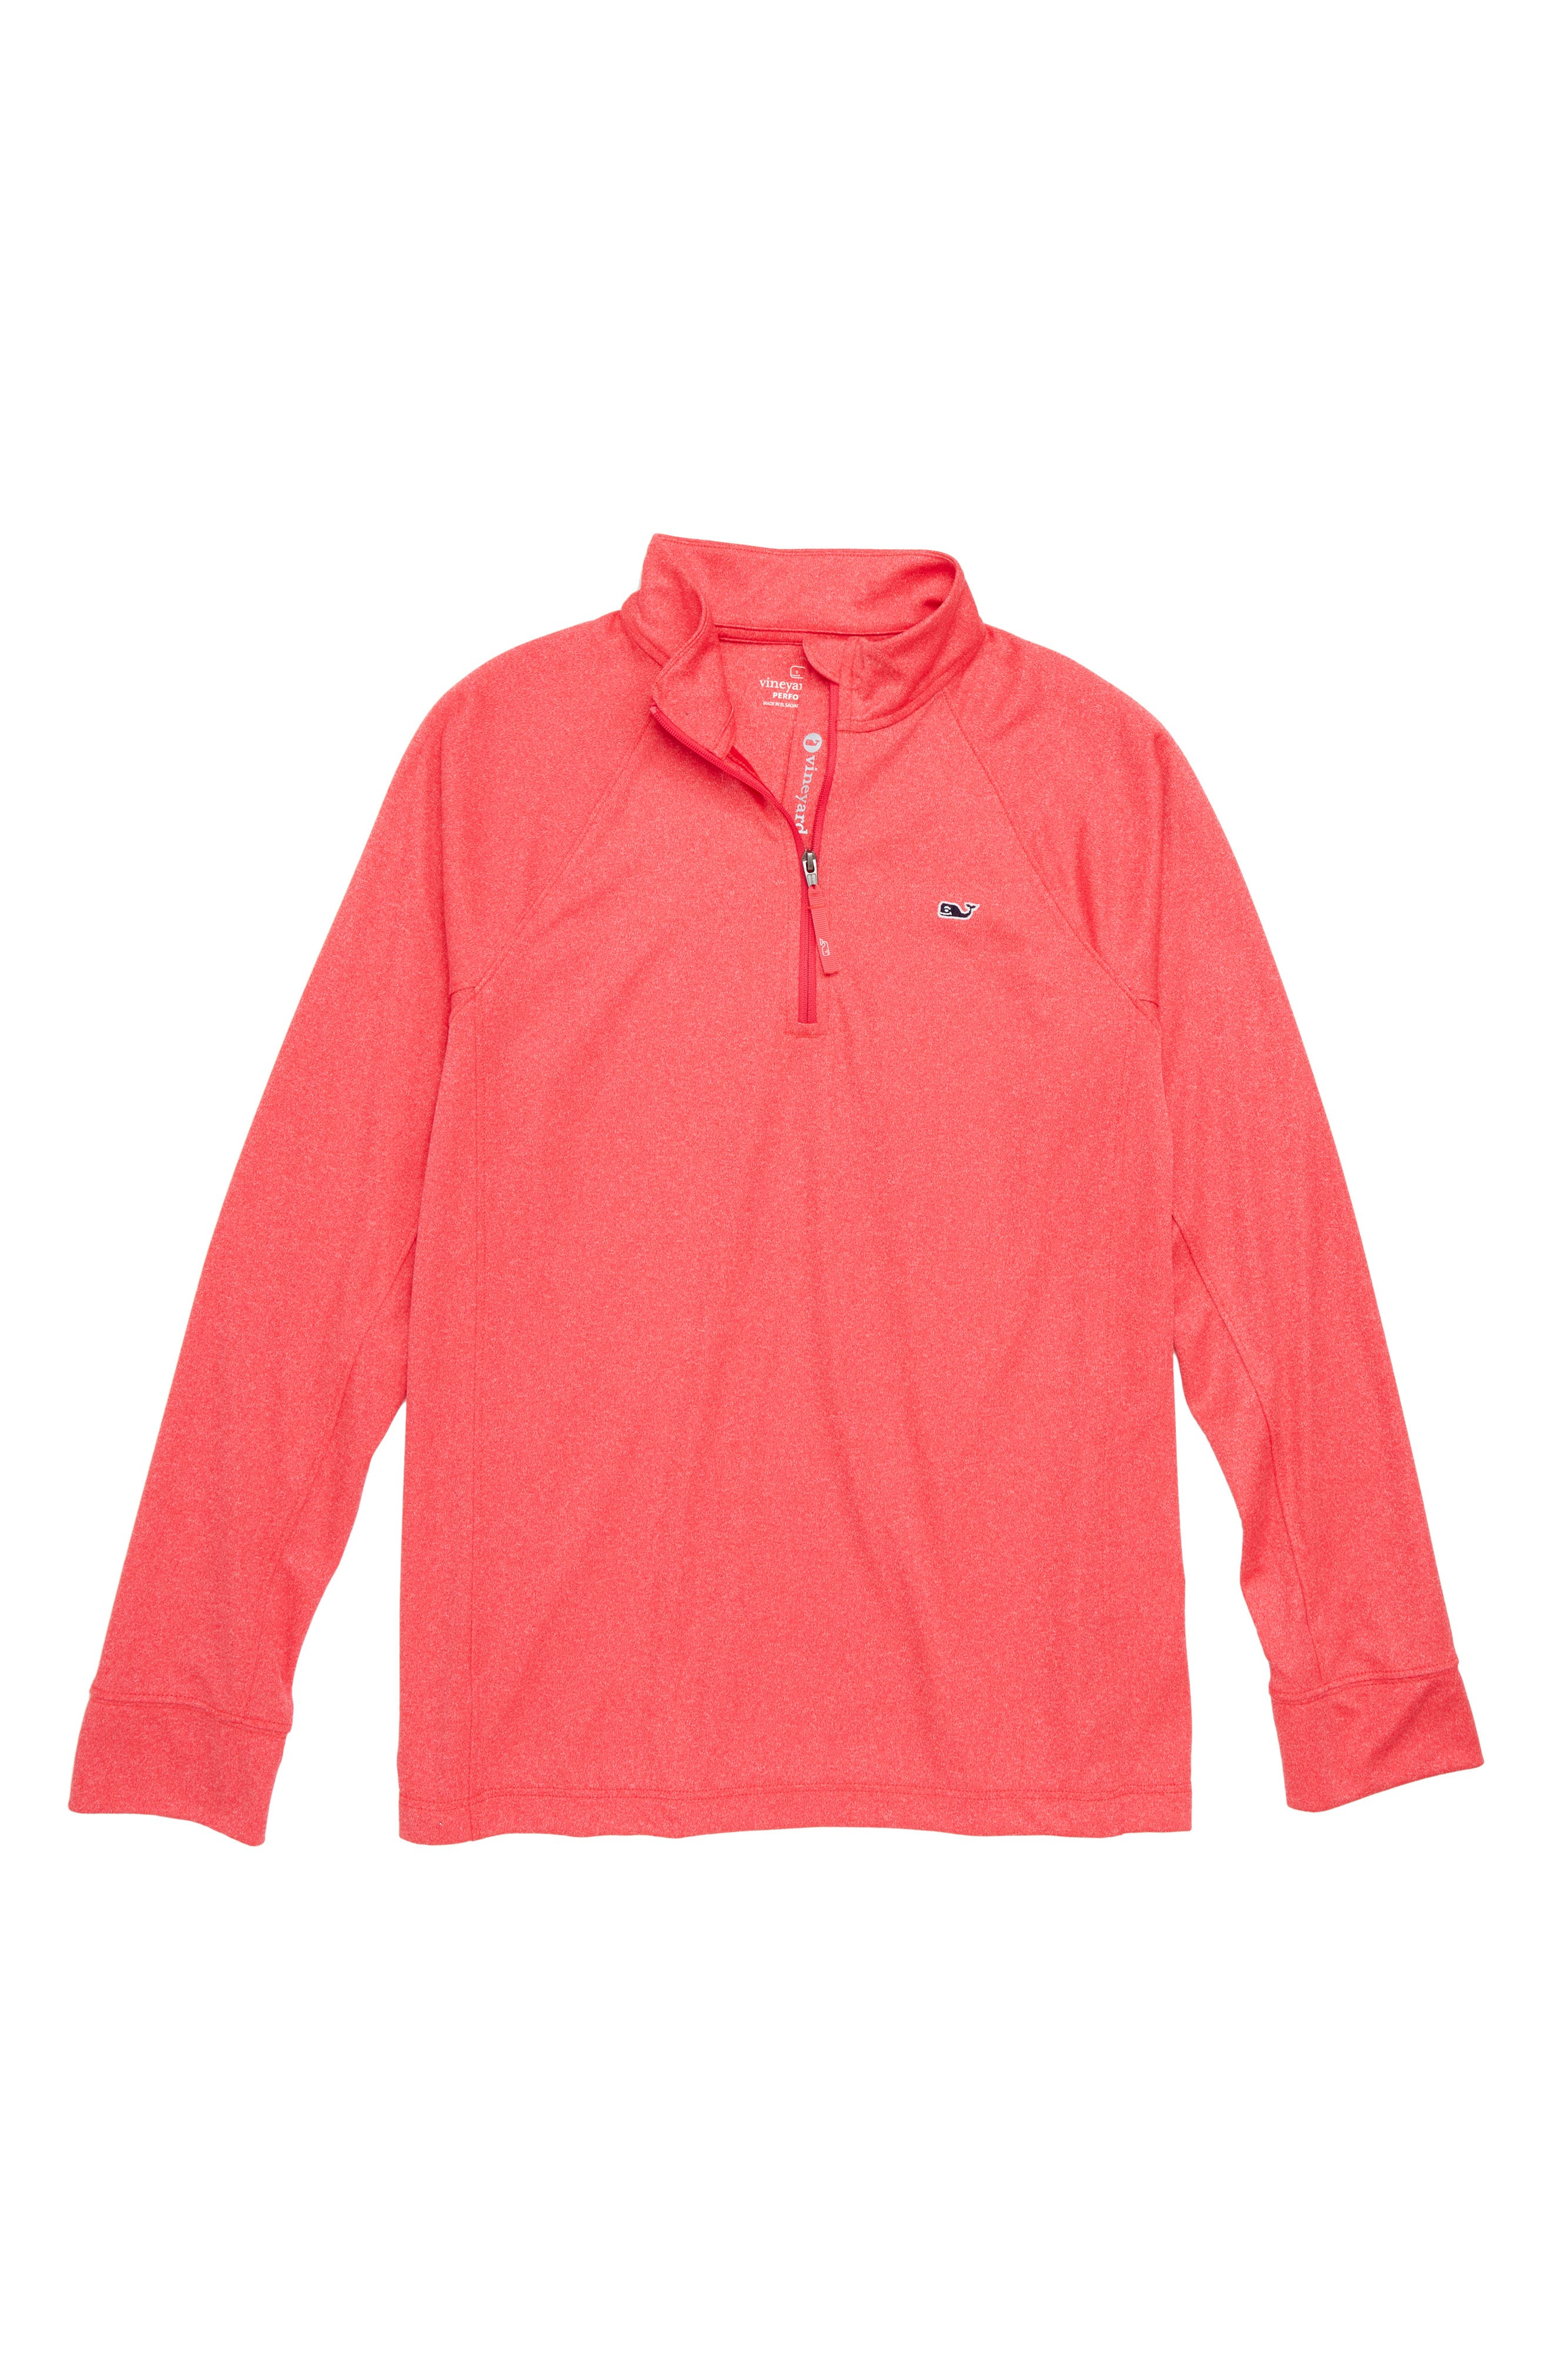 Performance Pullover,                             Main thumbnail 1, color,                             Lighthouse Red